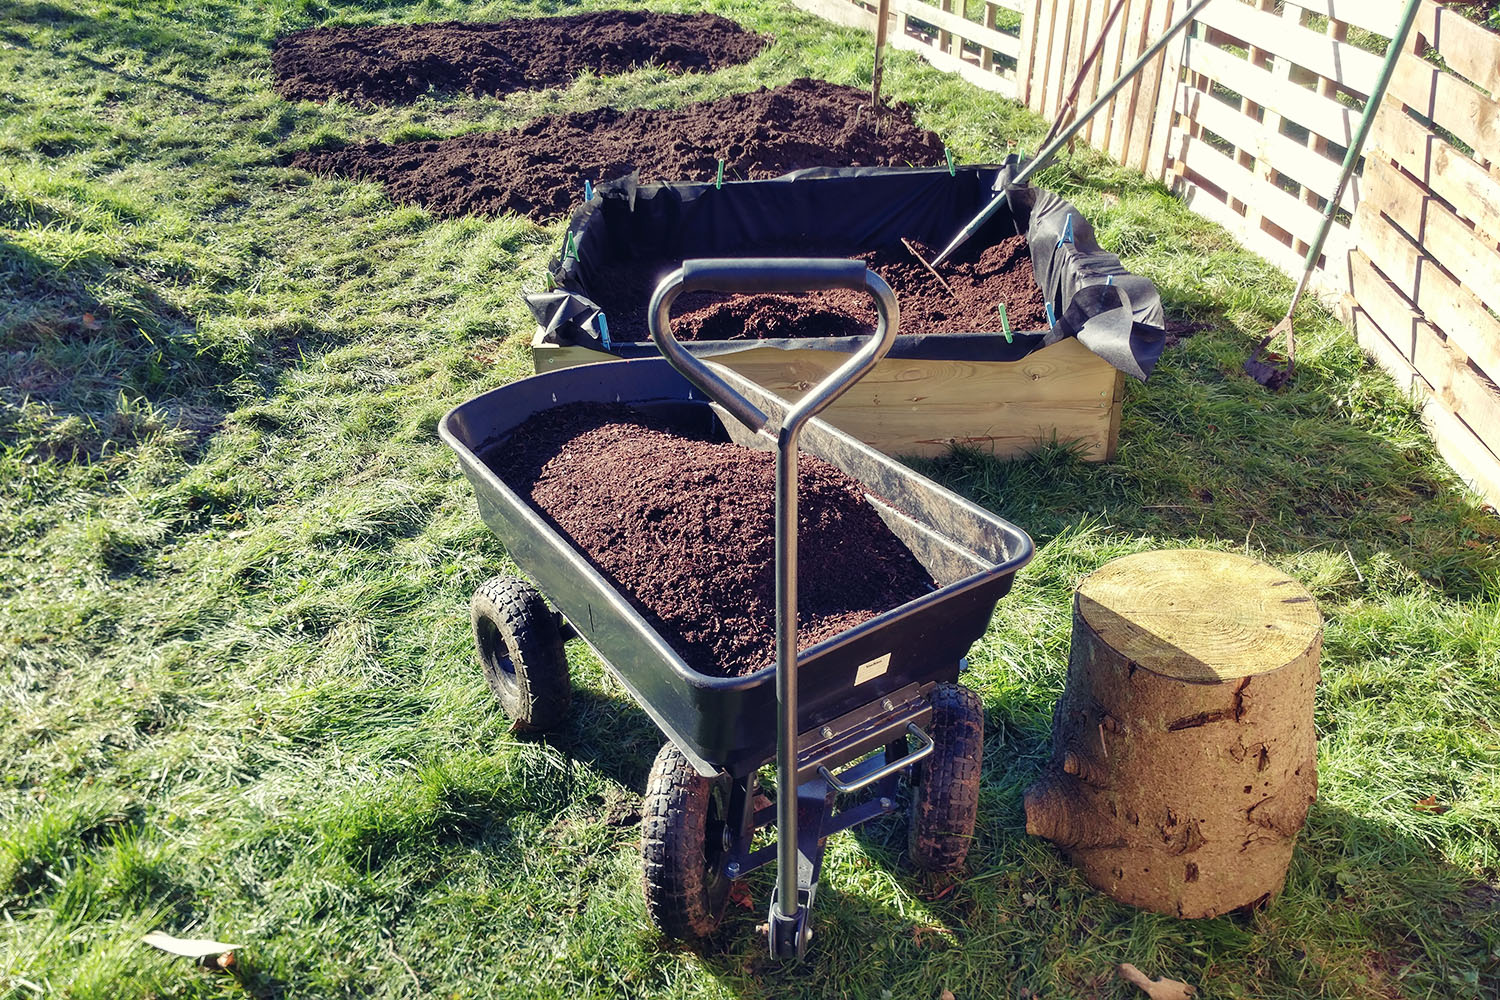 Our home-made fully organic compost